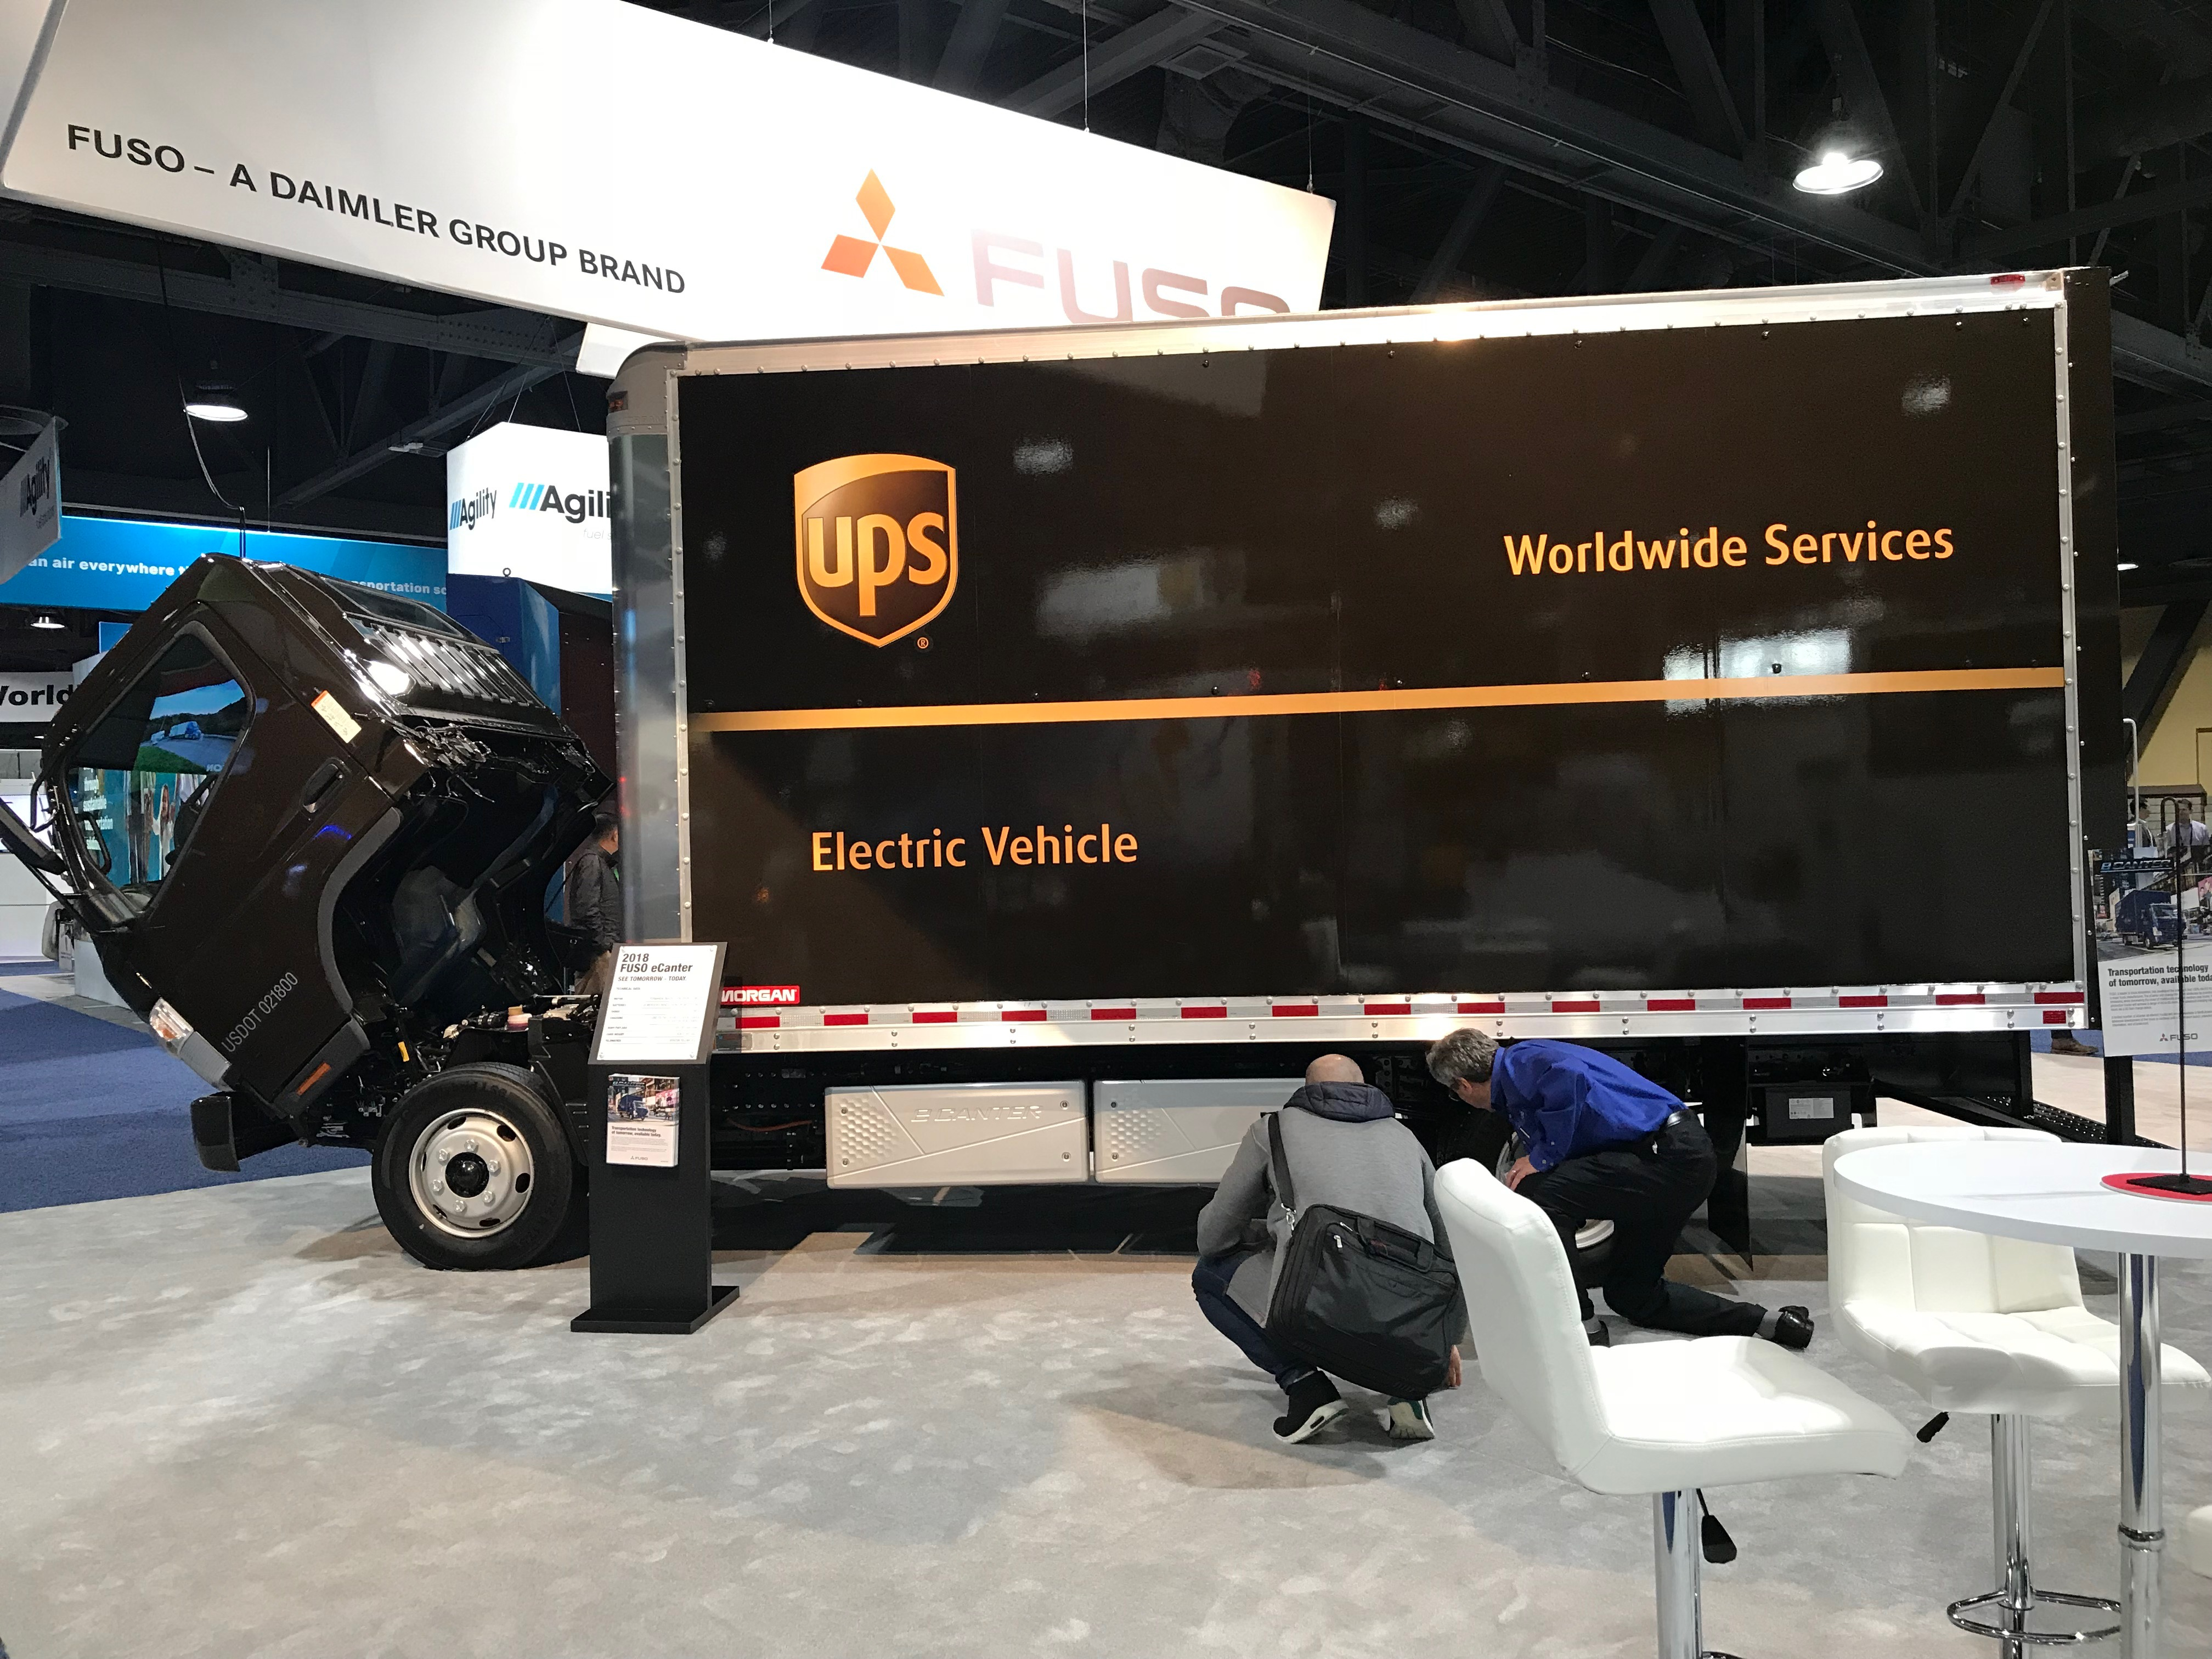 A UPS electric package delivery van.